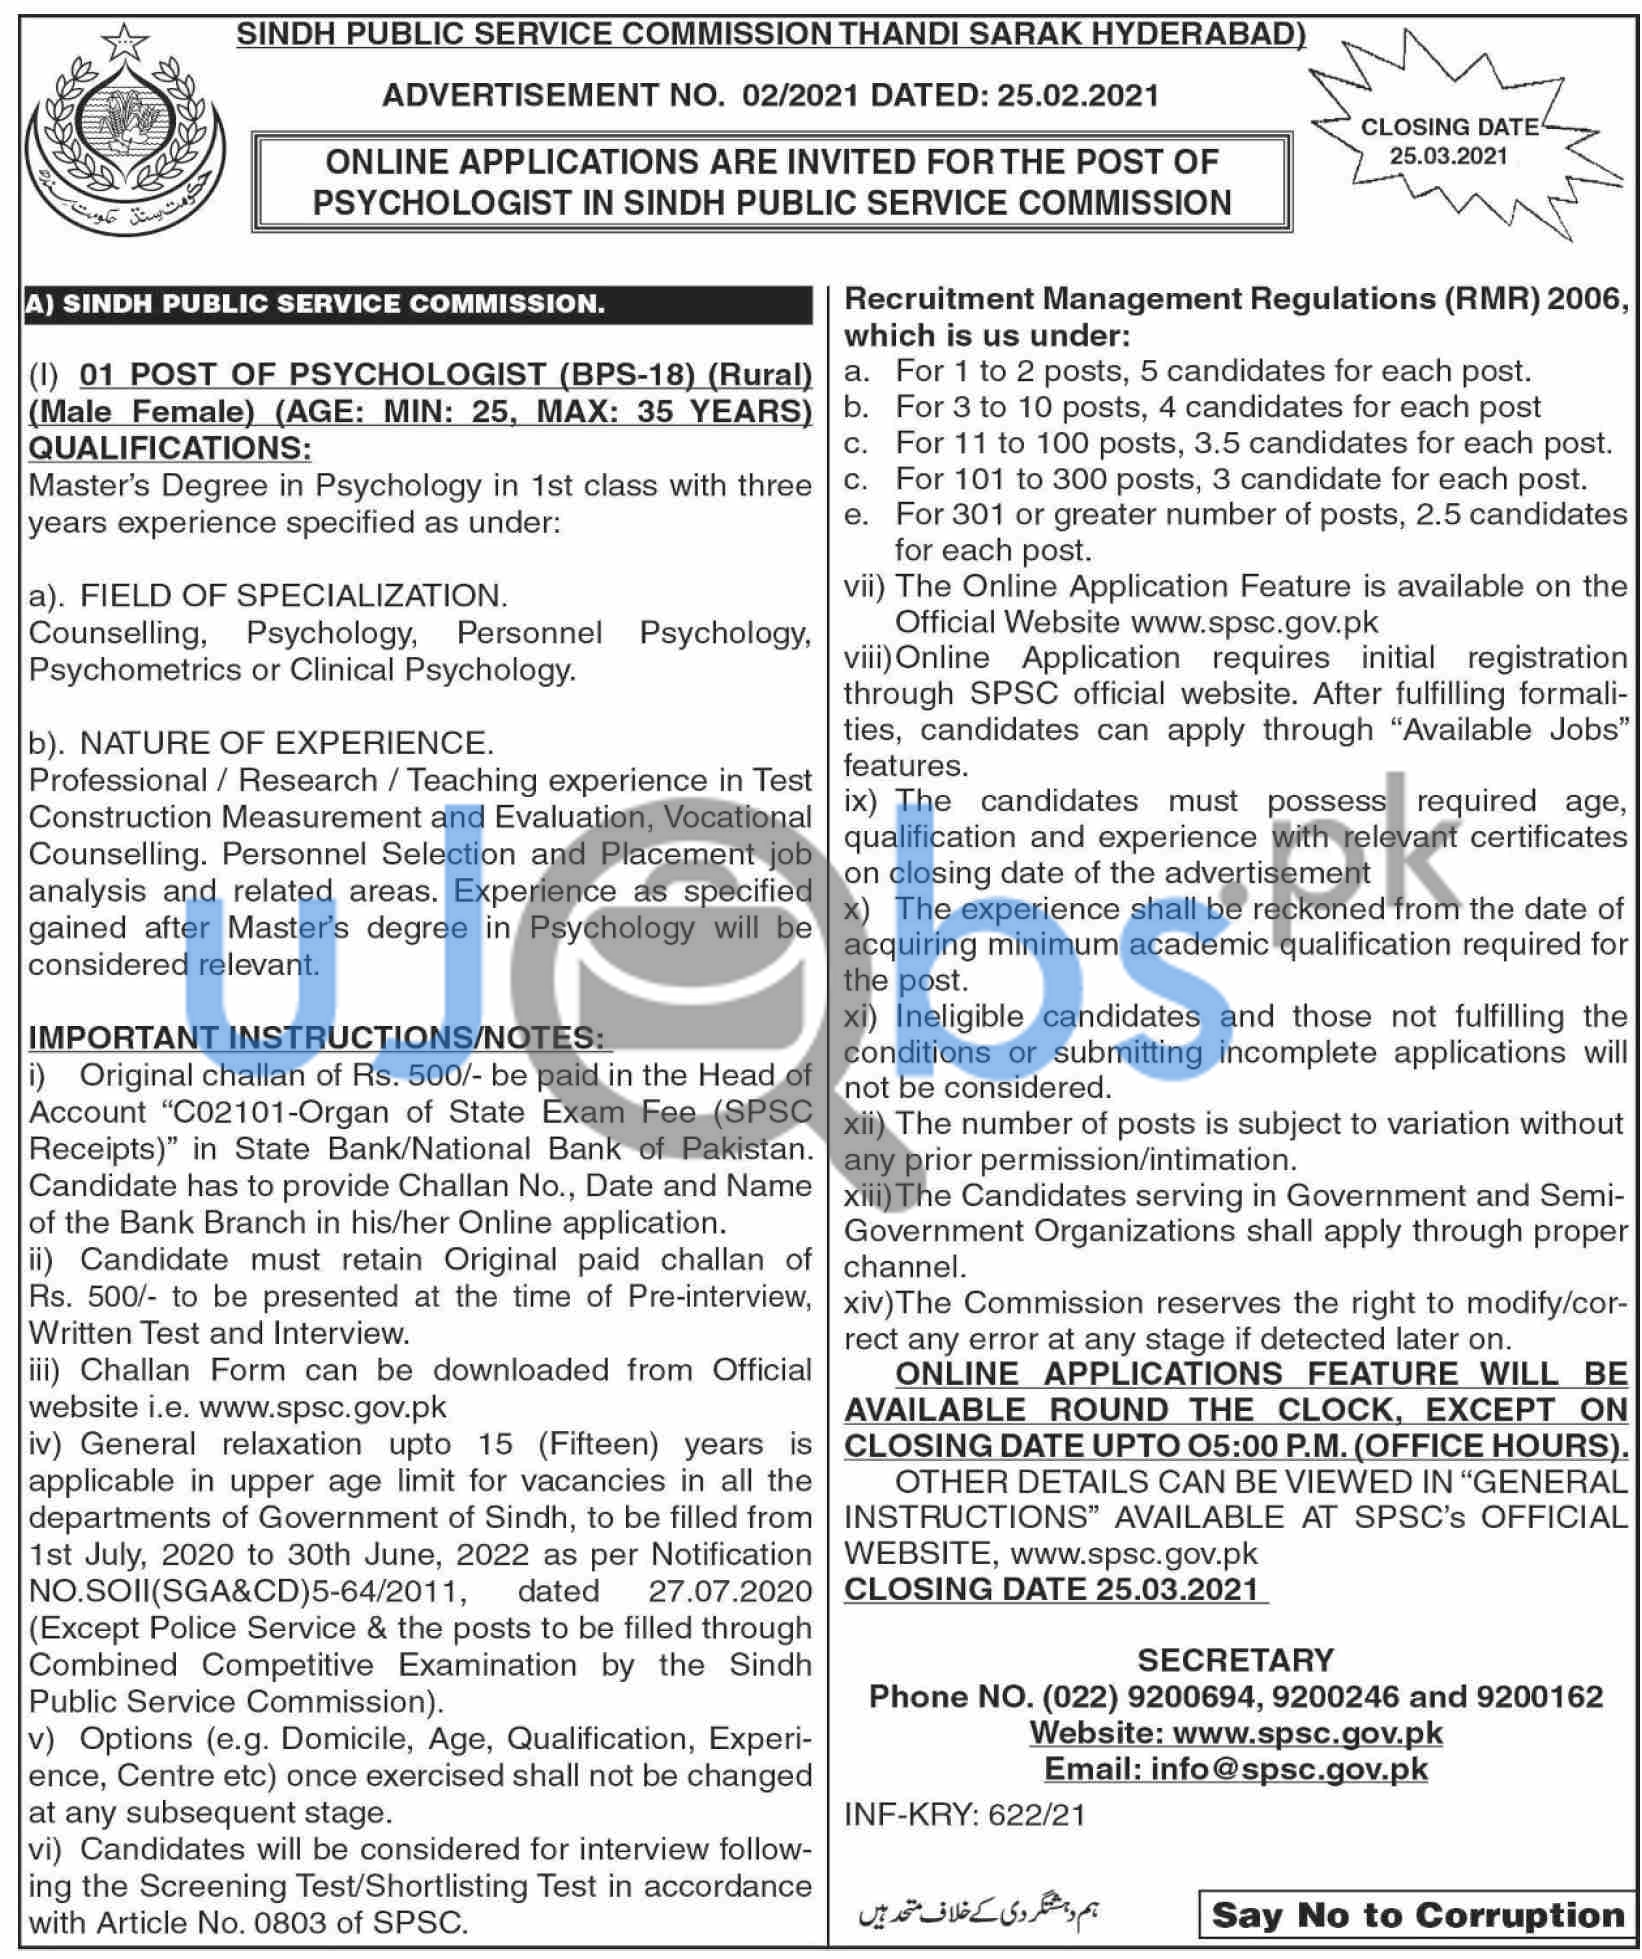 Sindh Public Service Commission (SPSC) Jobs in Hyderabad 2021